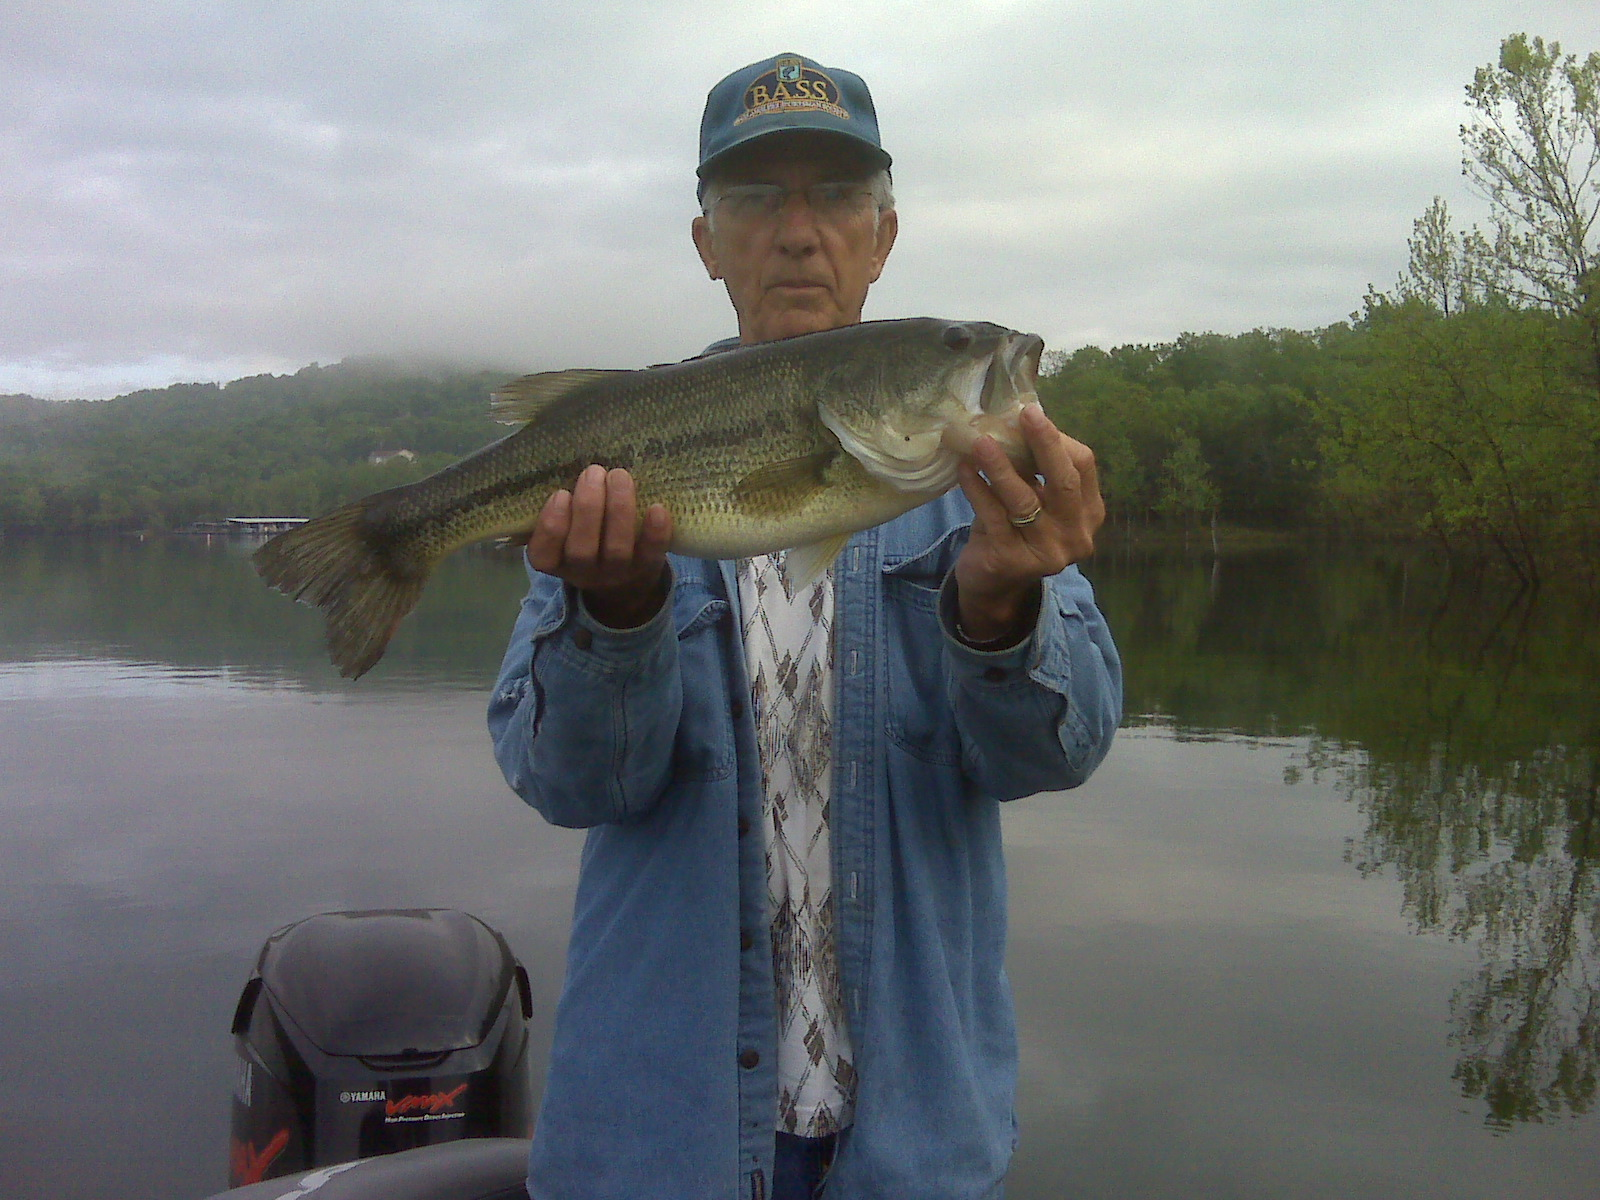 Table rock lake branson fishing guide service for Table rock lake fishing guide